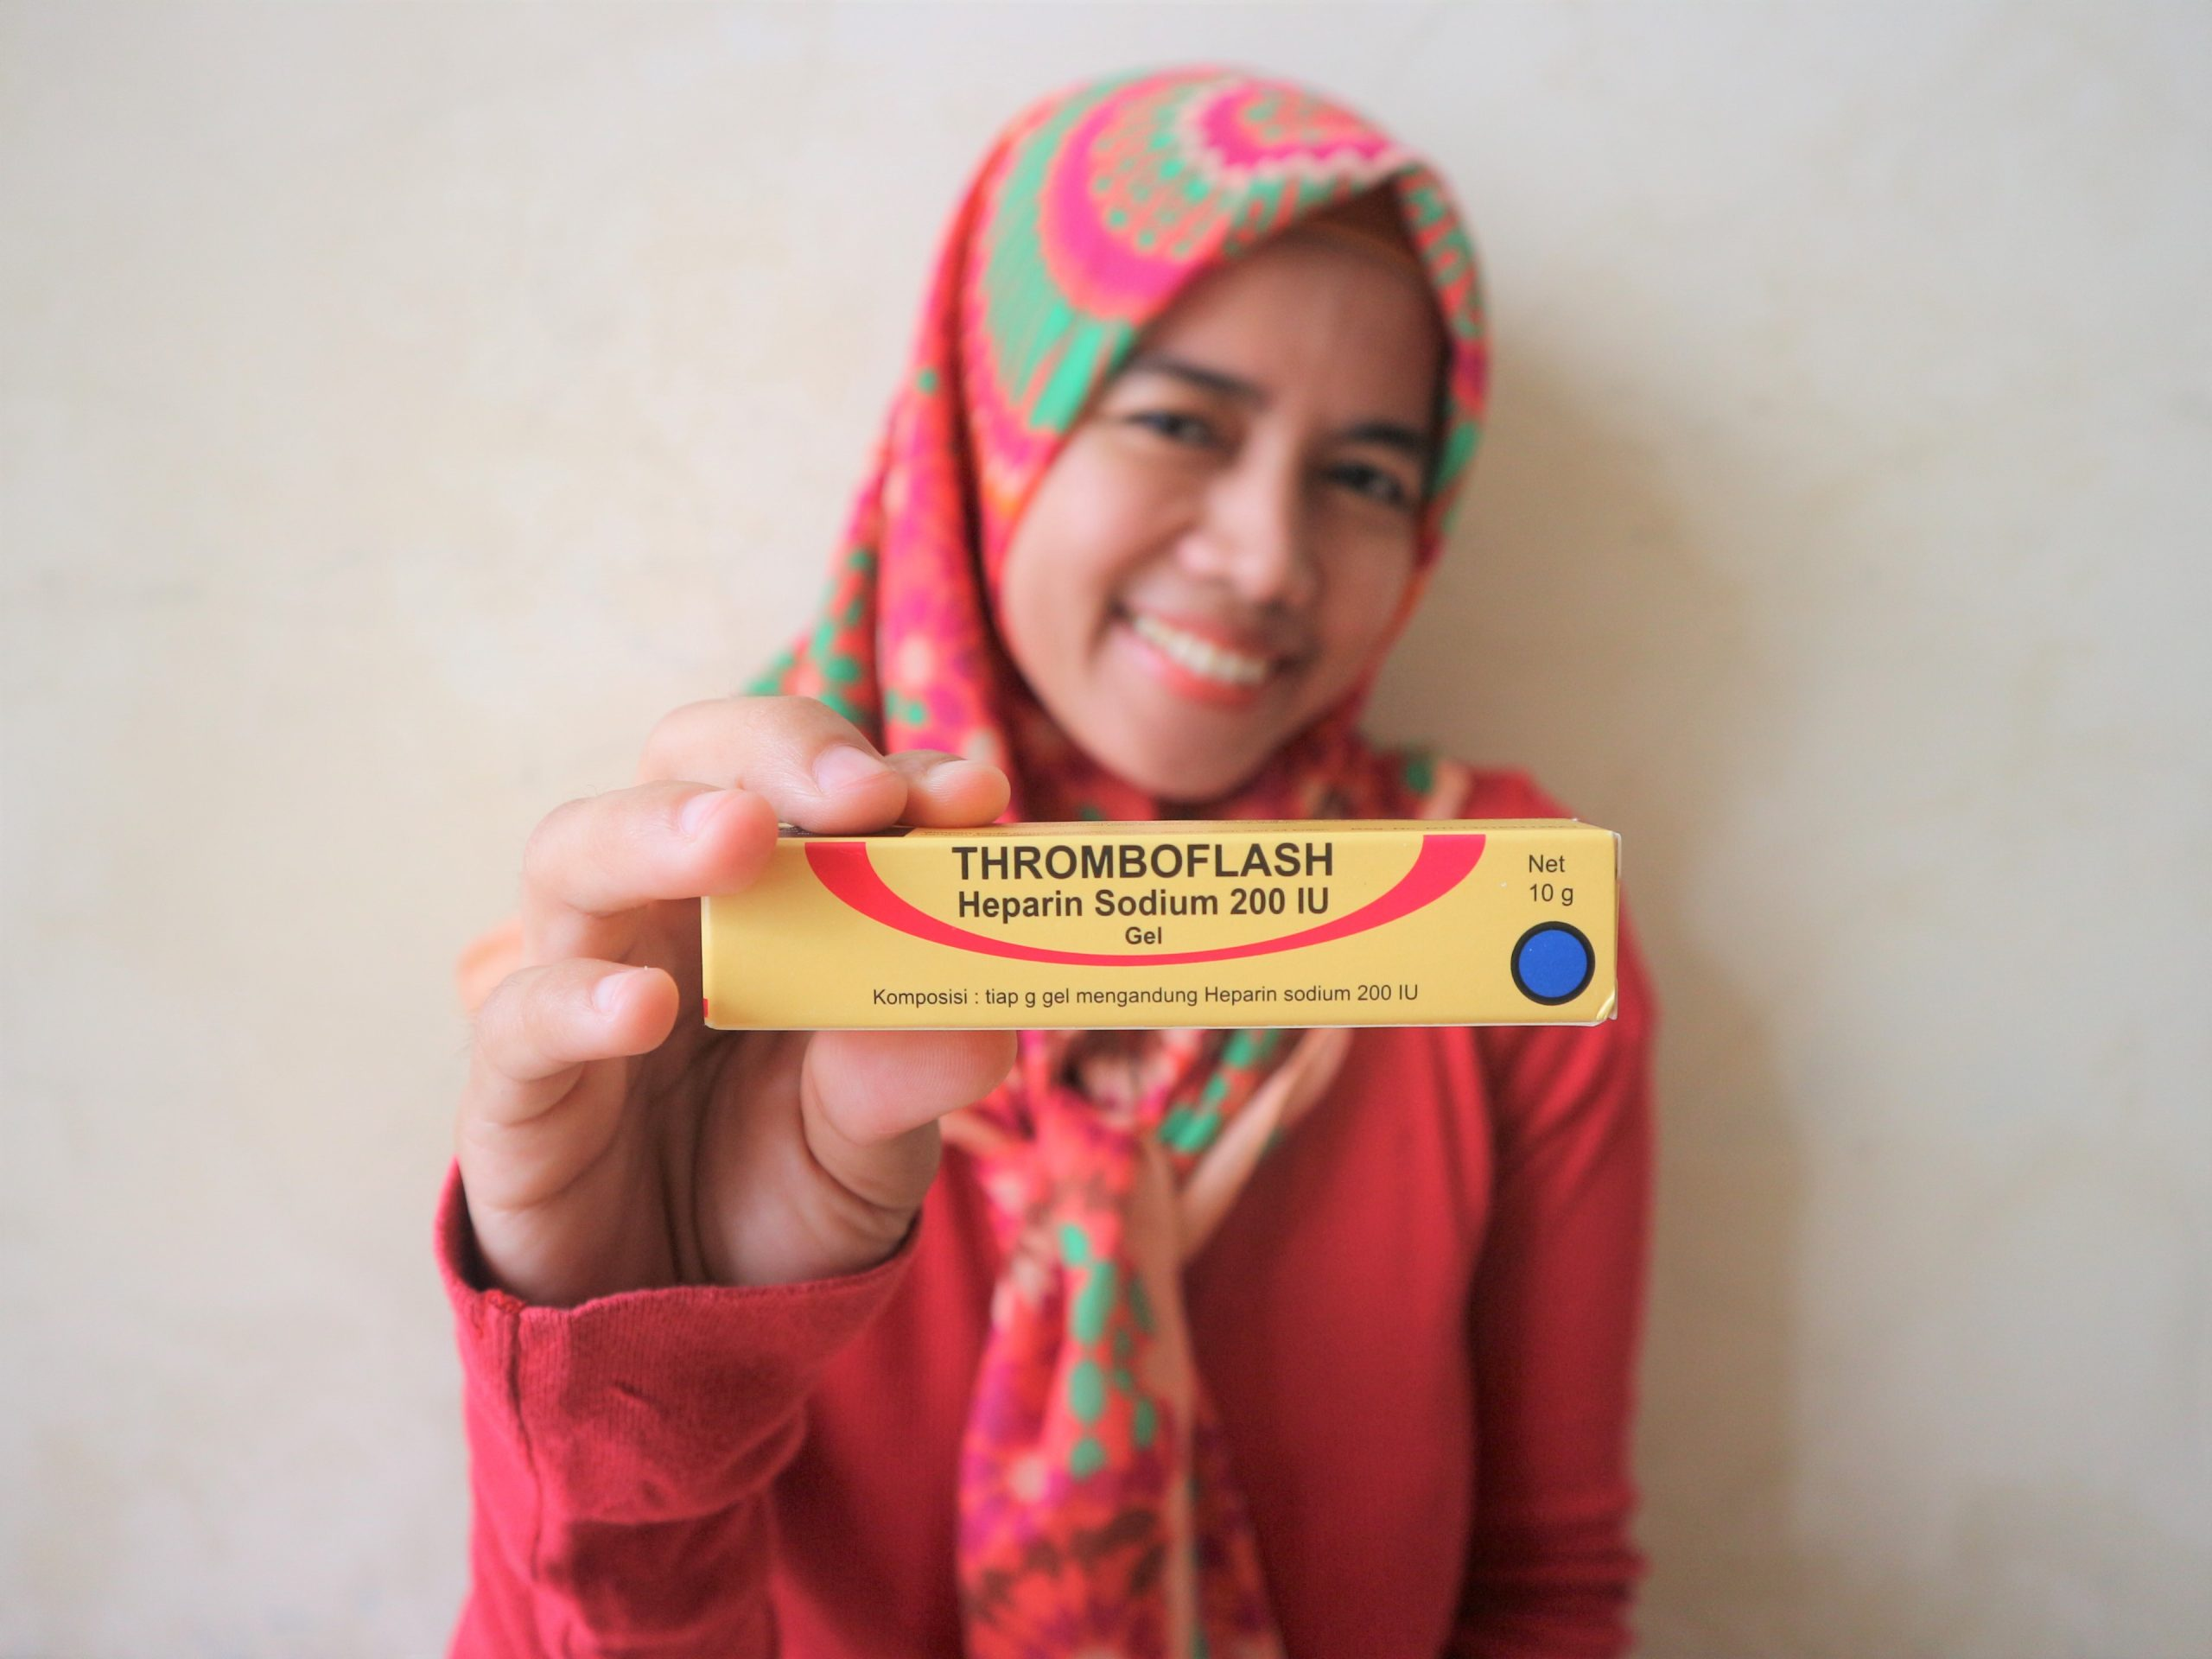 #AksiFlashBunda Bersama Thromboflash